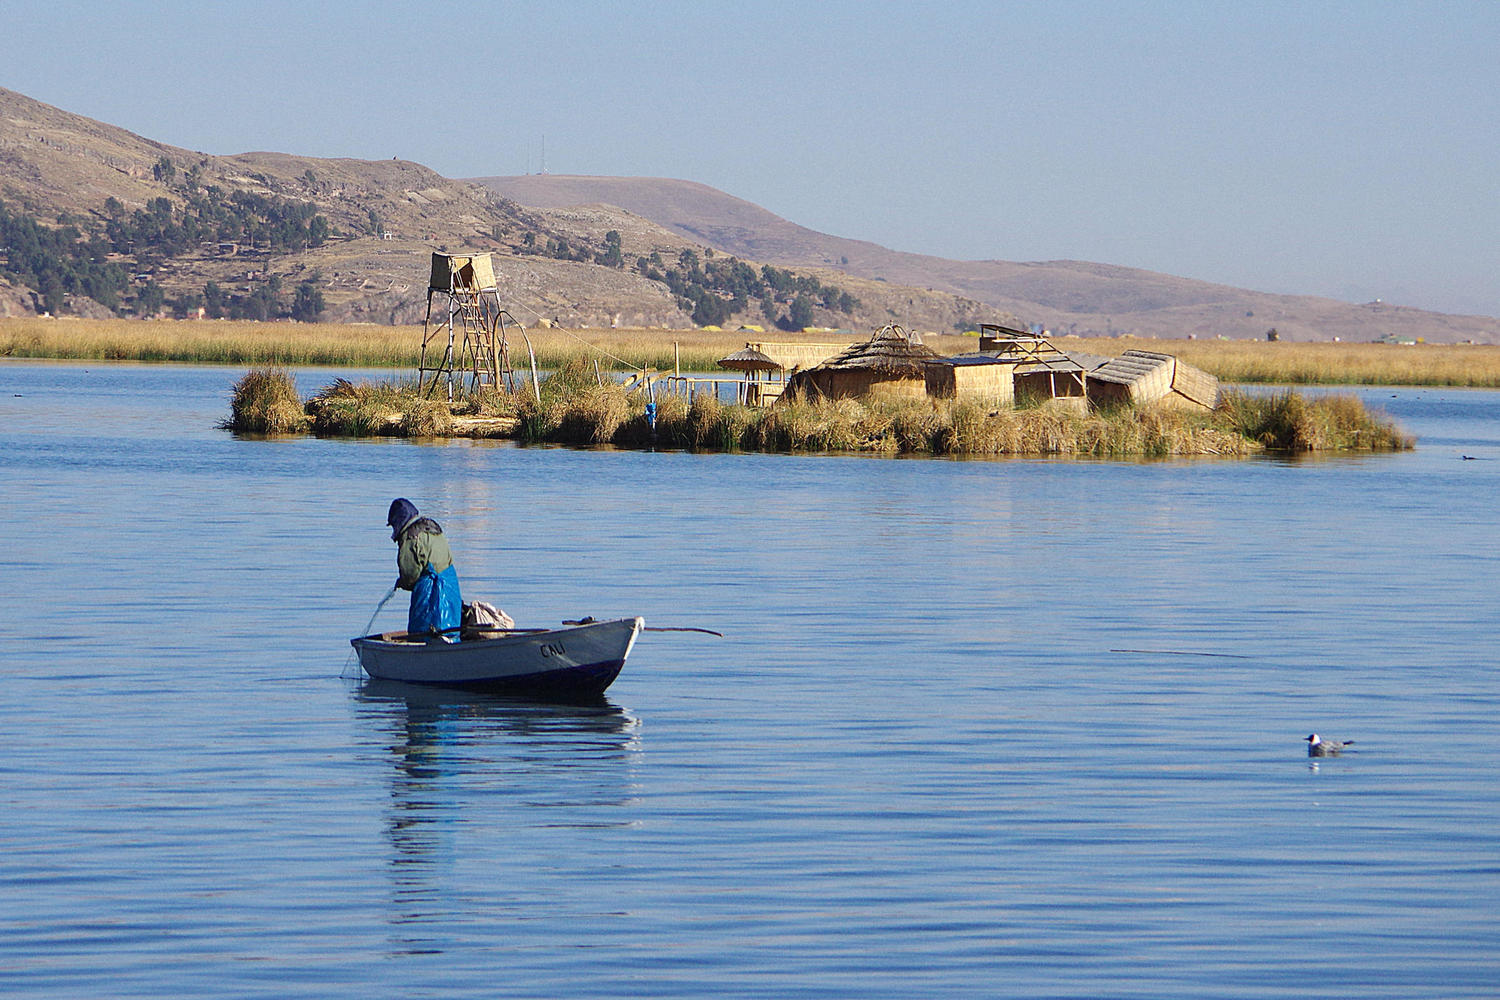 A timeless moment in the serenity of Lake Titicaca